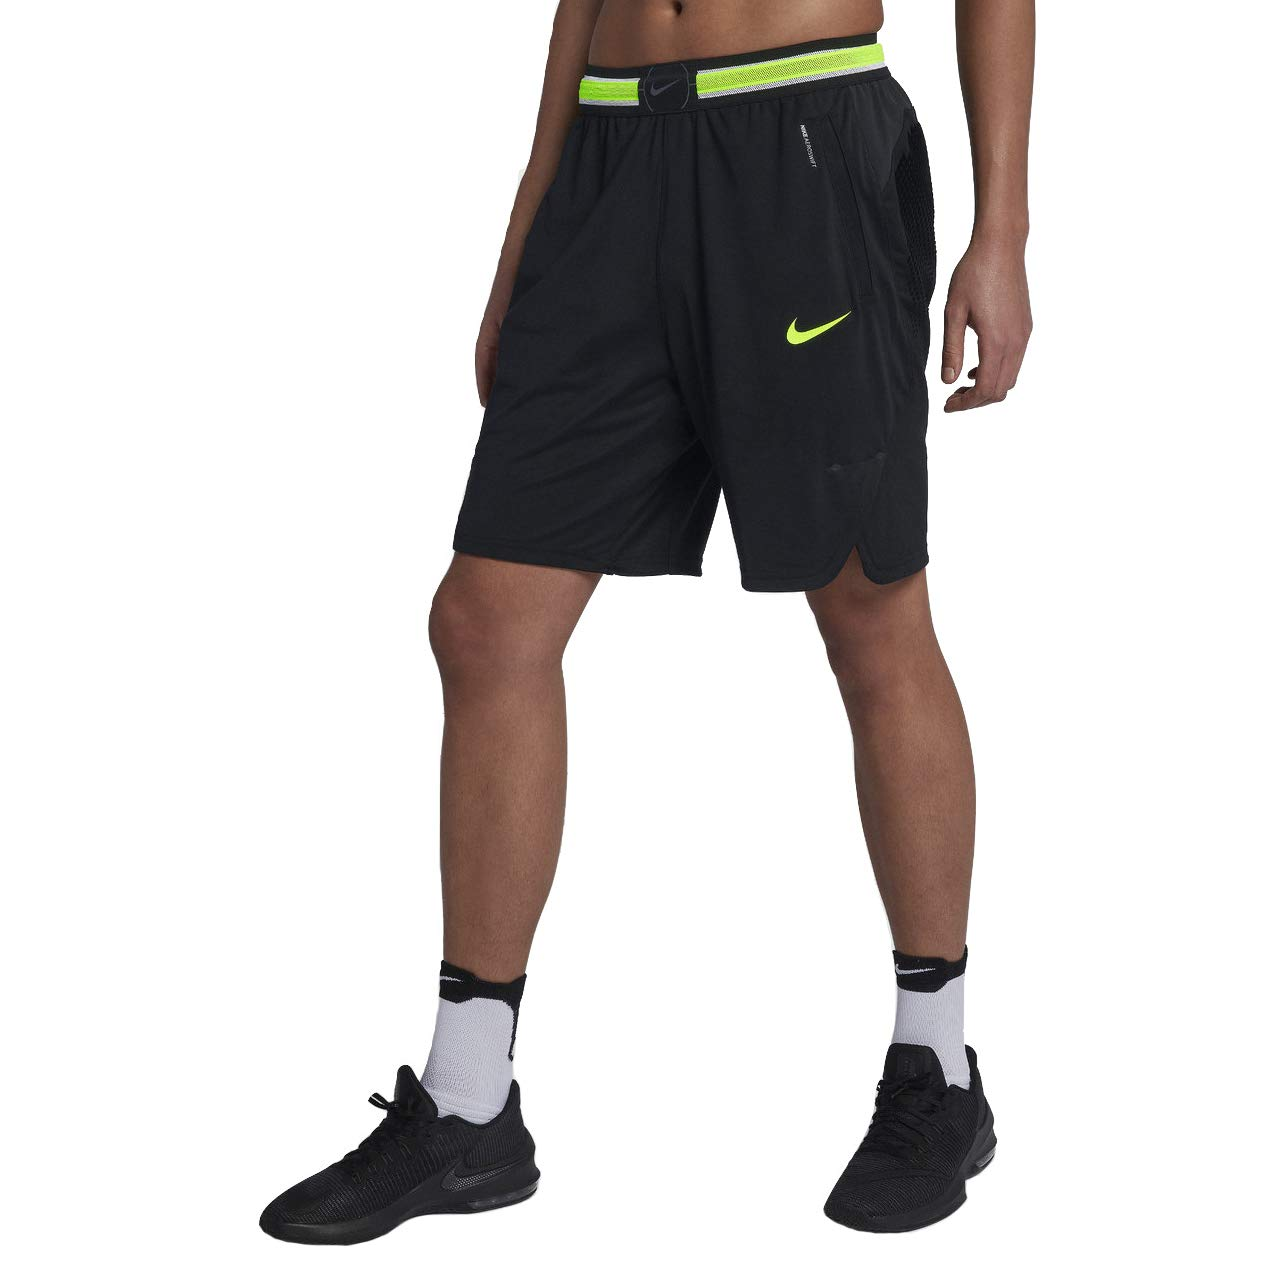 NIKE AeroSwift Men's 9